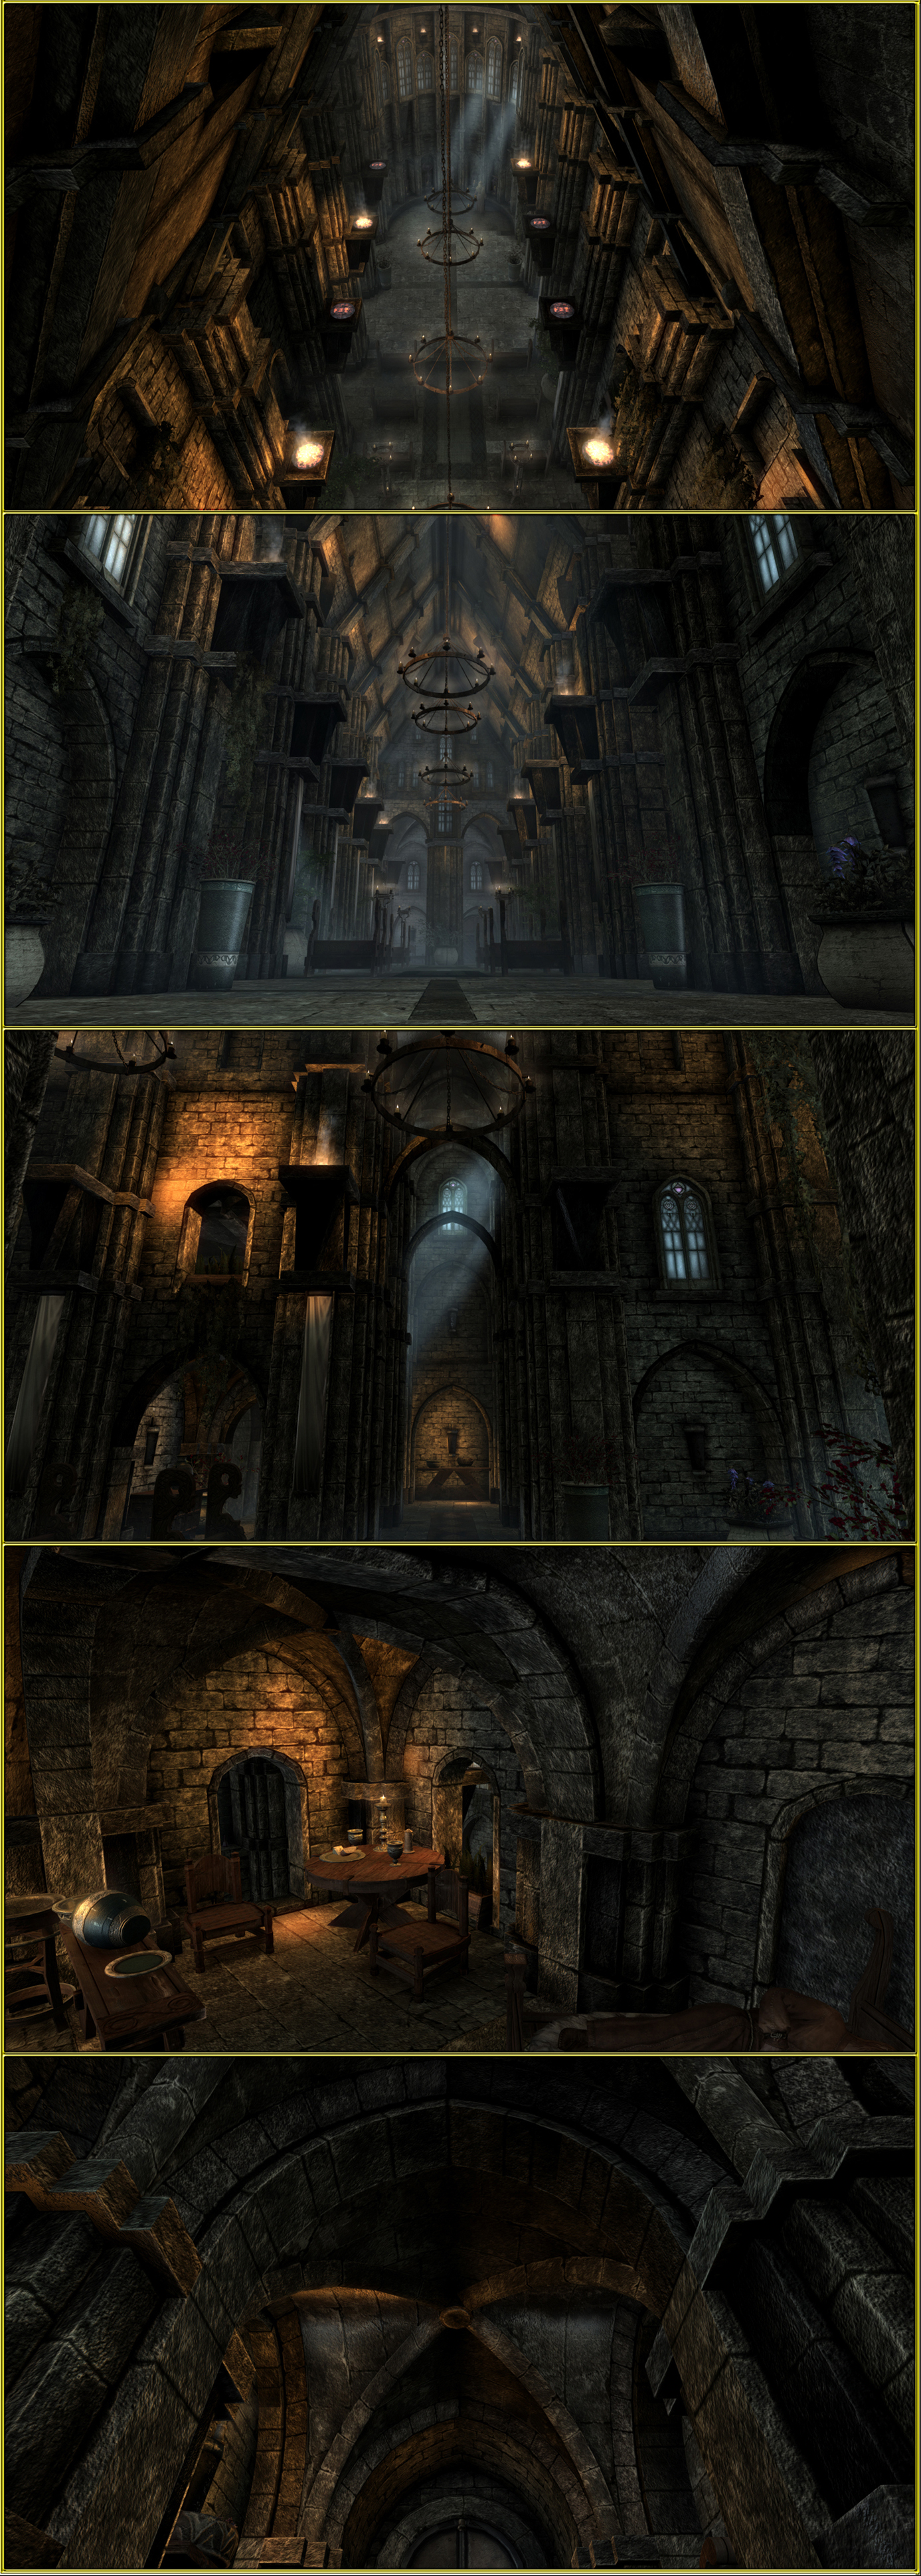 temple of the nine - gothic architecture image